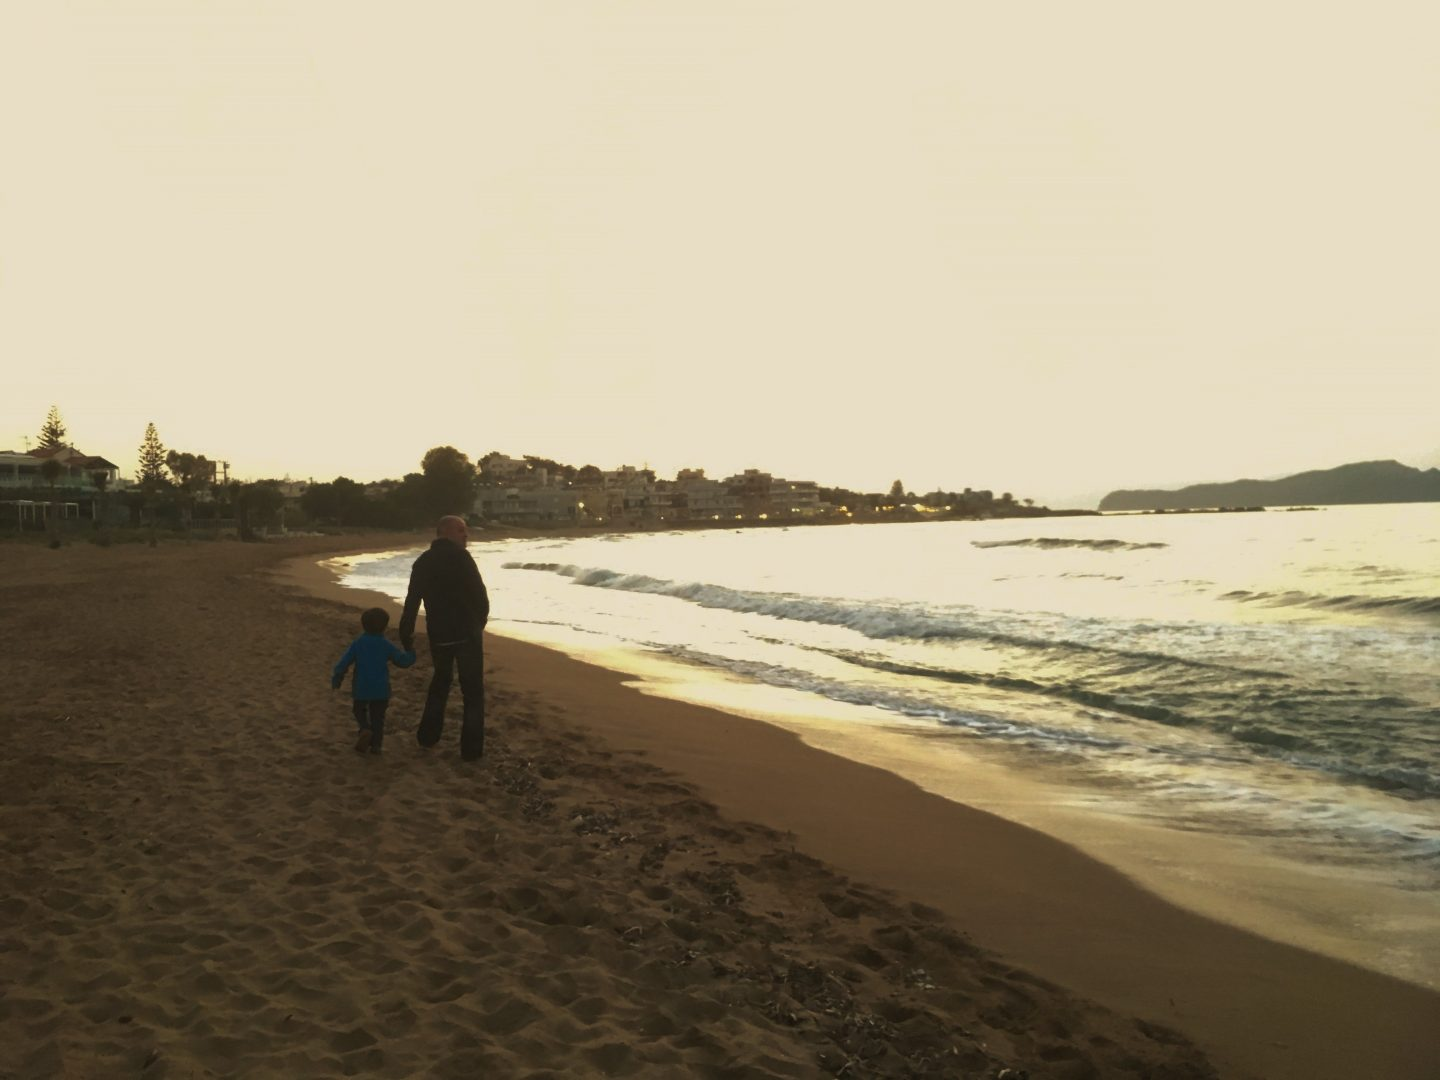 evening walk beach ammos hotel chania crete